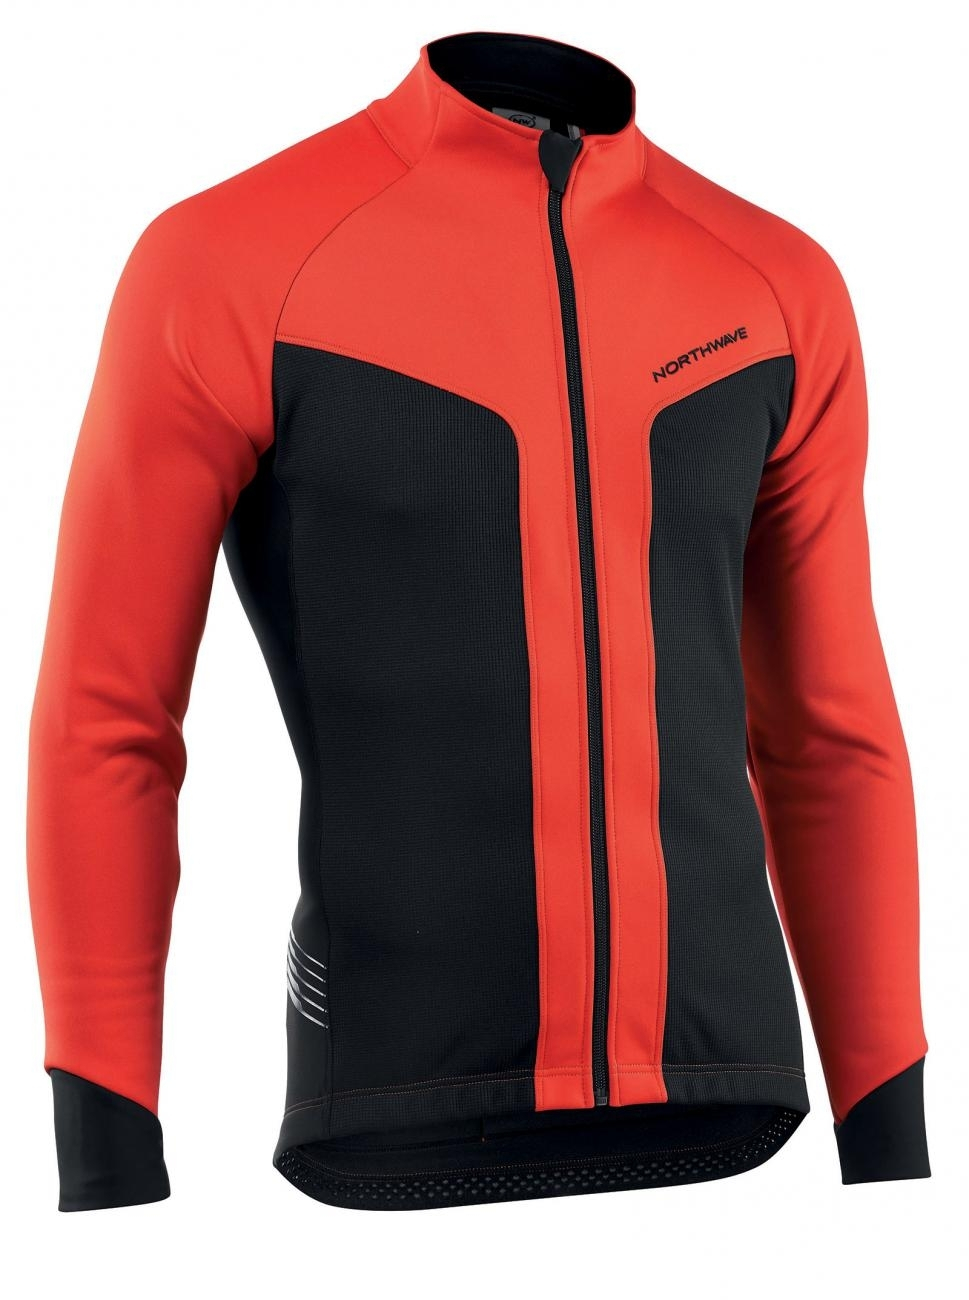 Buy Man Cycling Jacket Reload - Selective 17619174 | Italy2Us.com